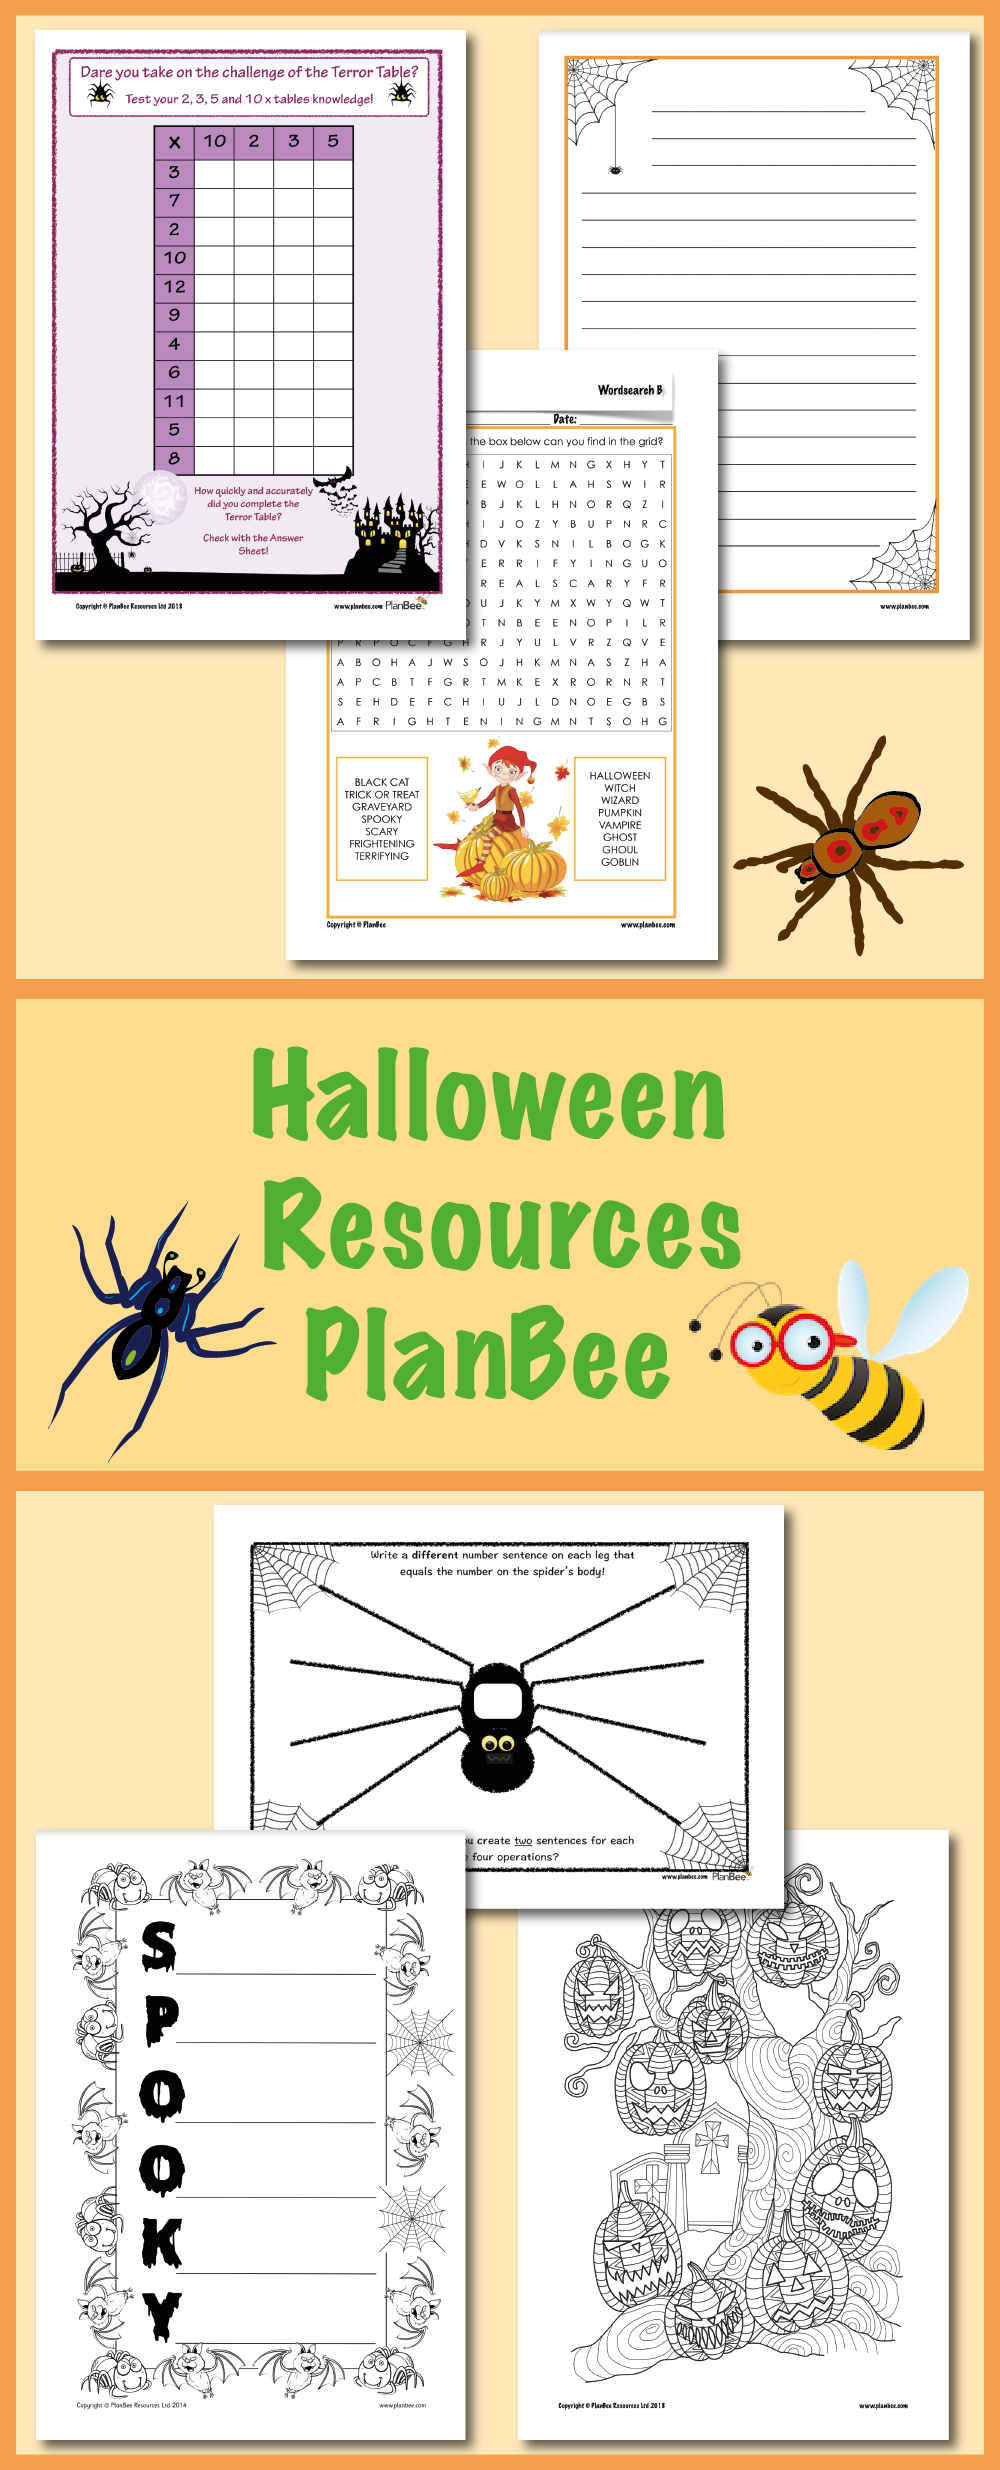 View and downloads loads of FREE Halloween resources for